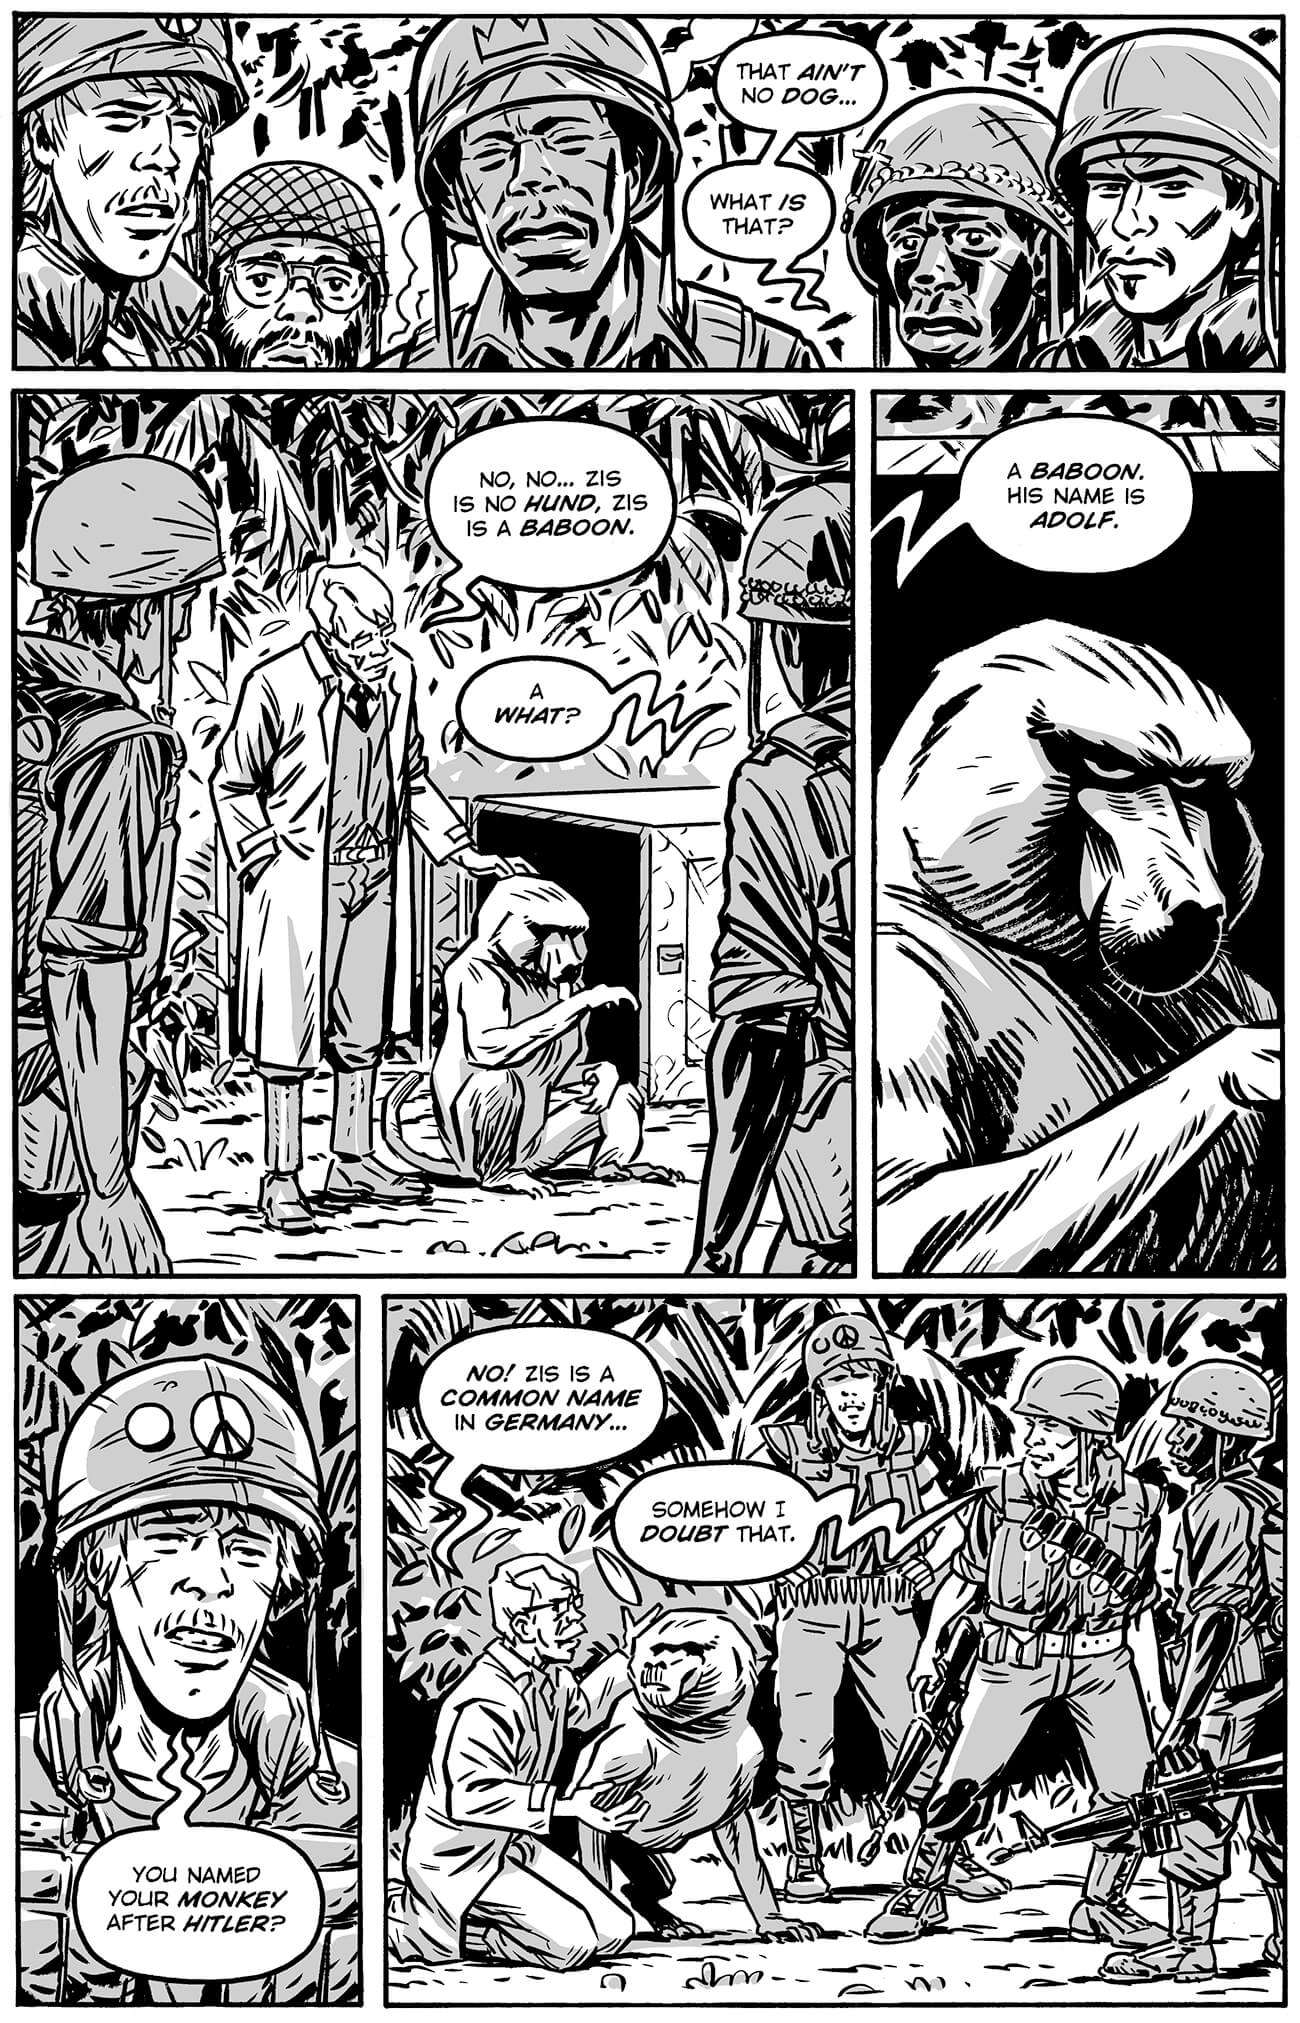 guerillas by brahm revel, page 104